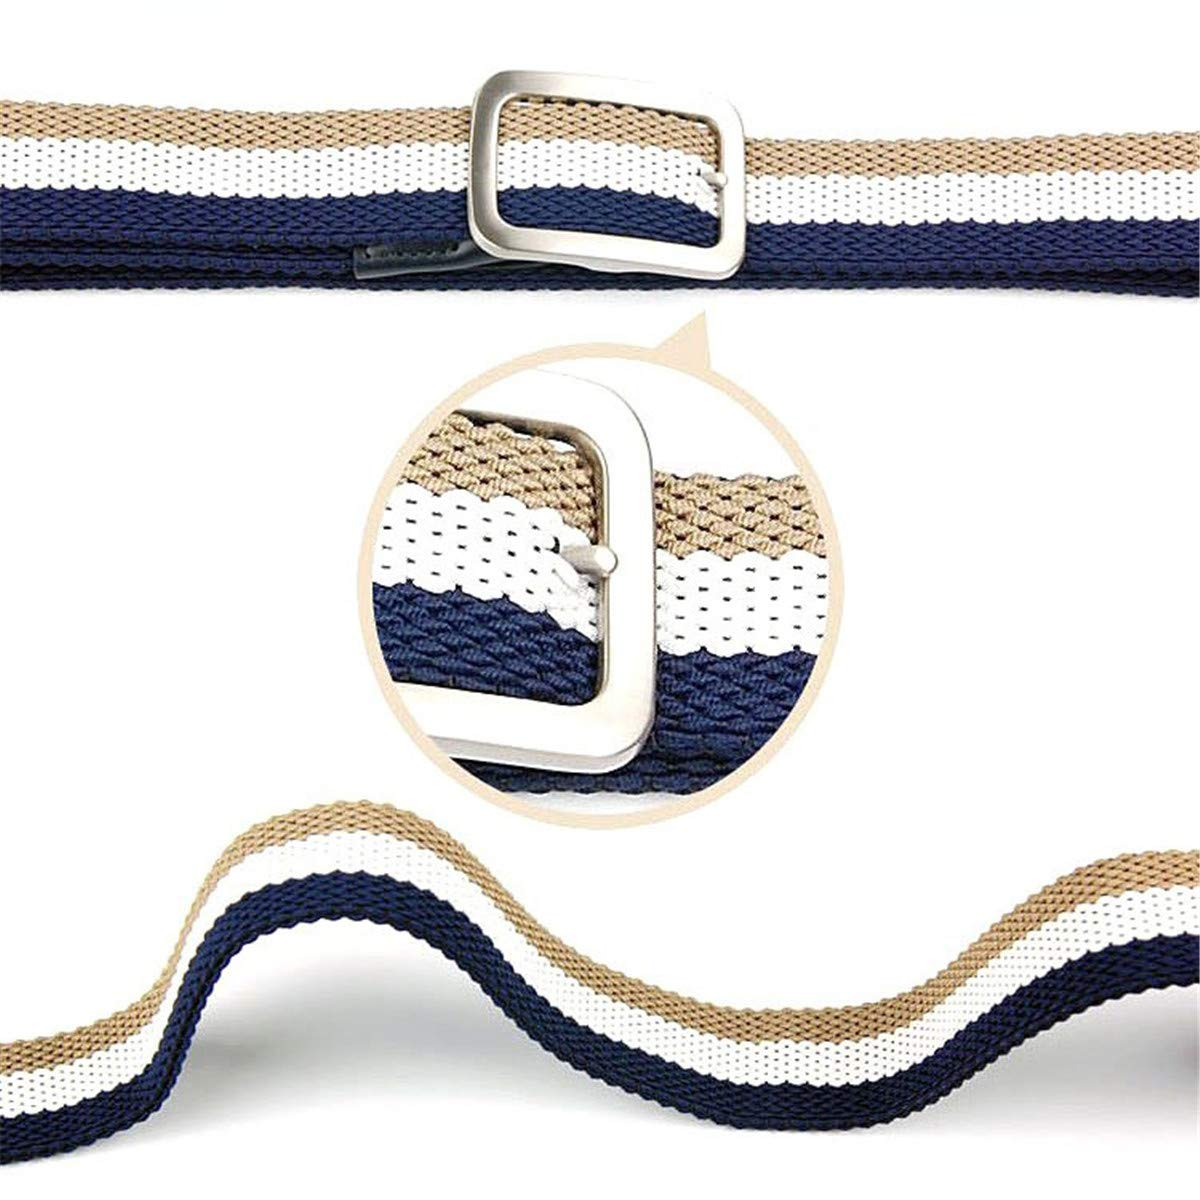 ECYC Knitted Pin Buckle Belt Woven Canvas Elastic Stretch Belt without Holes